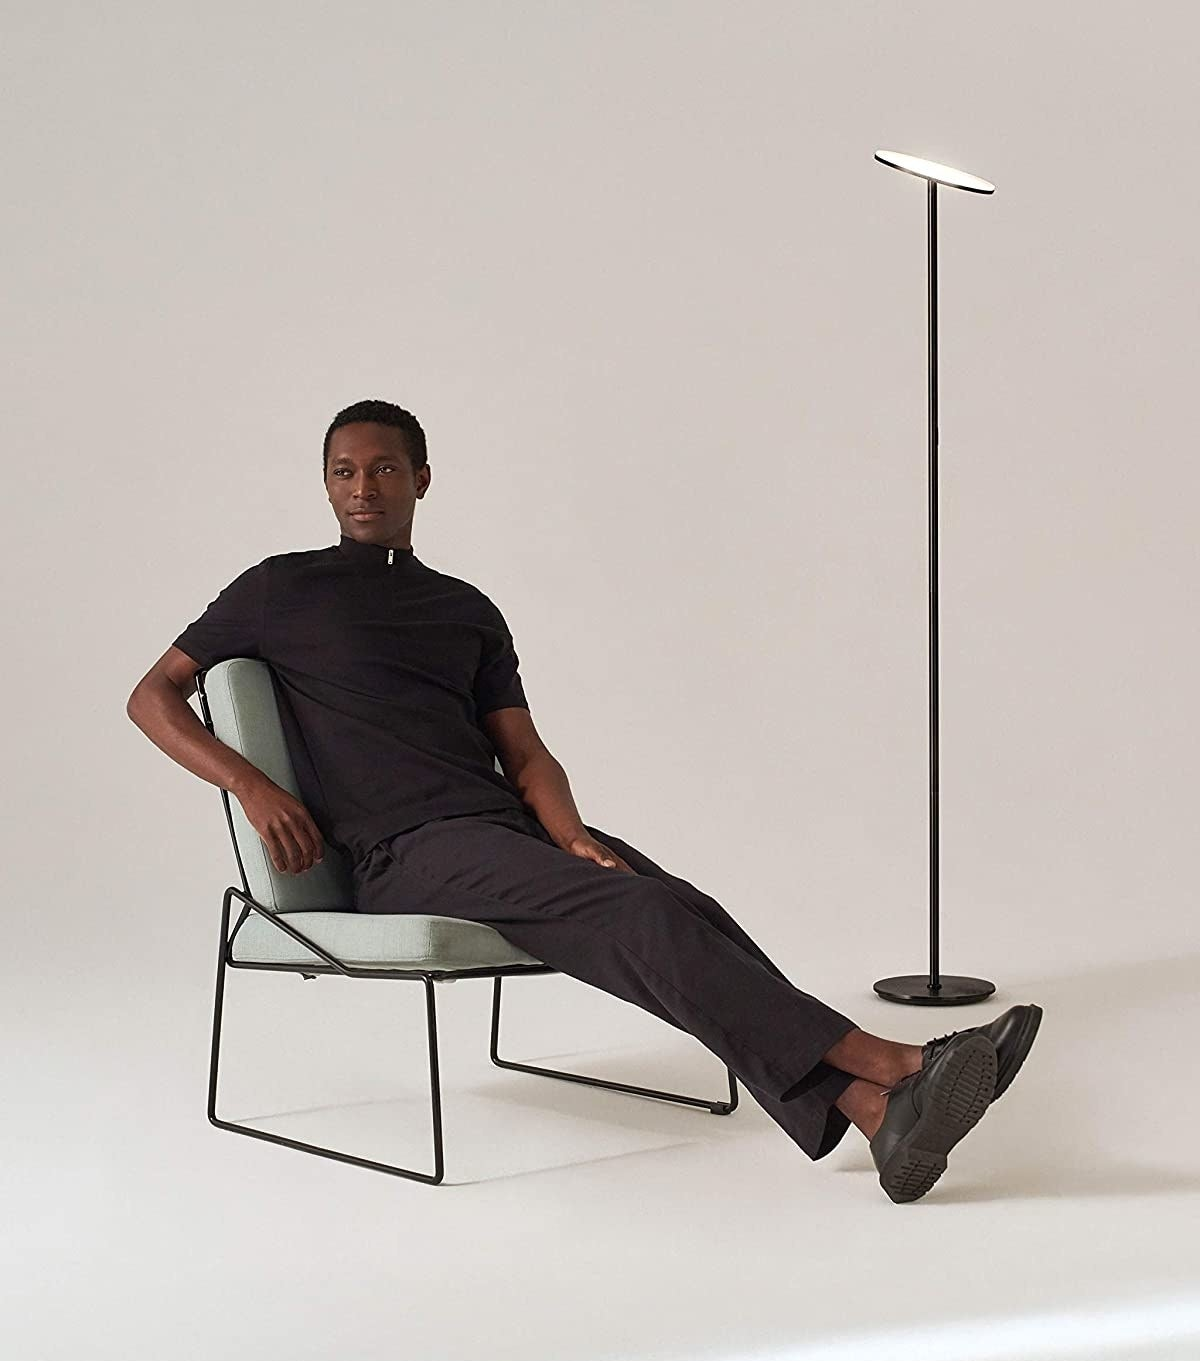 person sitting on chair next to standing lamp